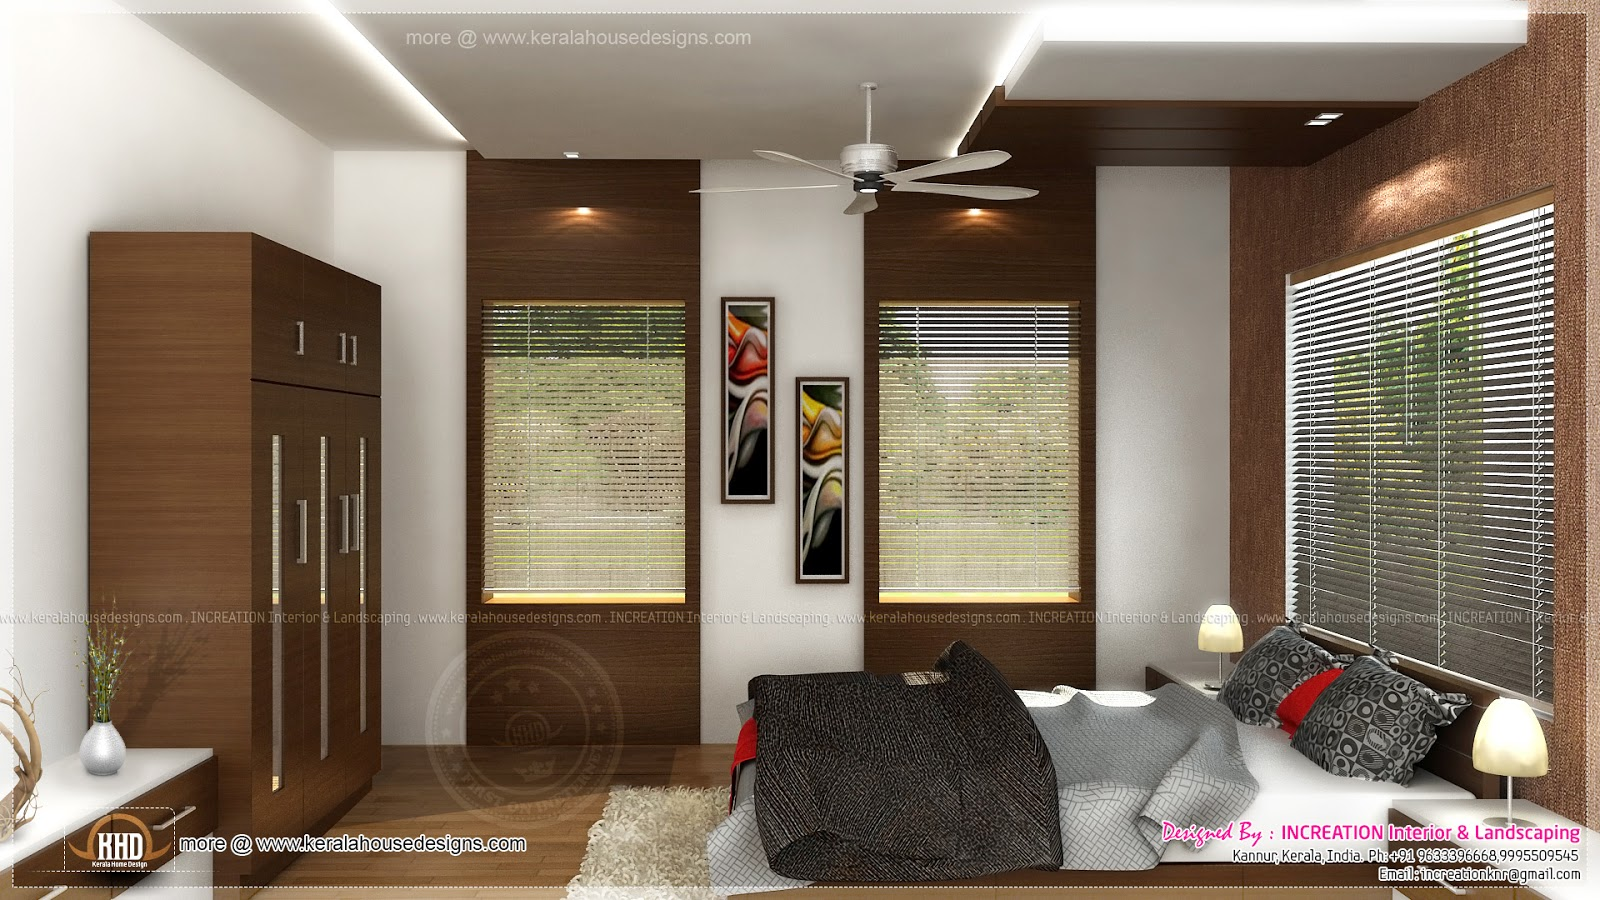 Interior designs from kannur kerala kerala home design for Interior design plans for houses